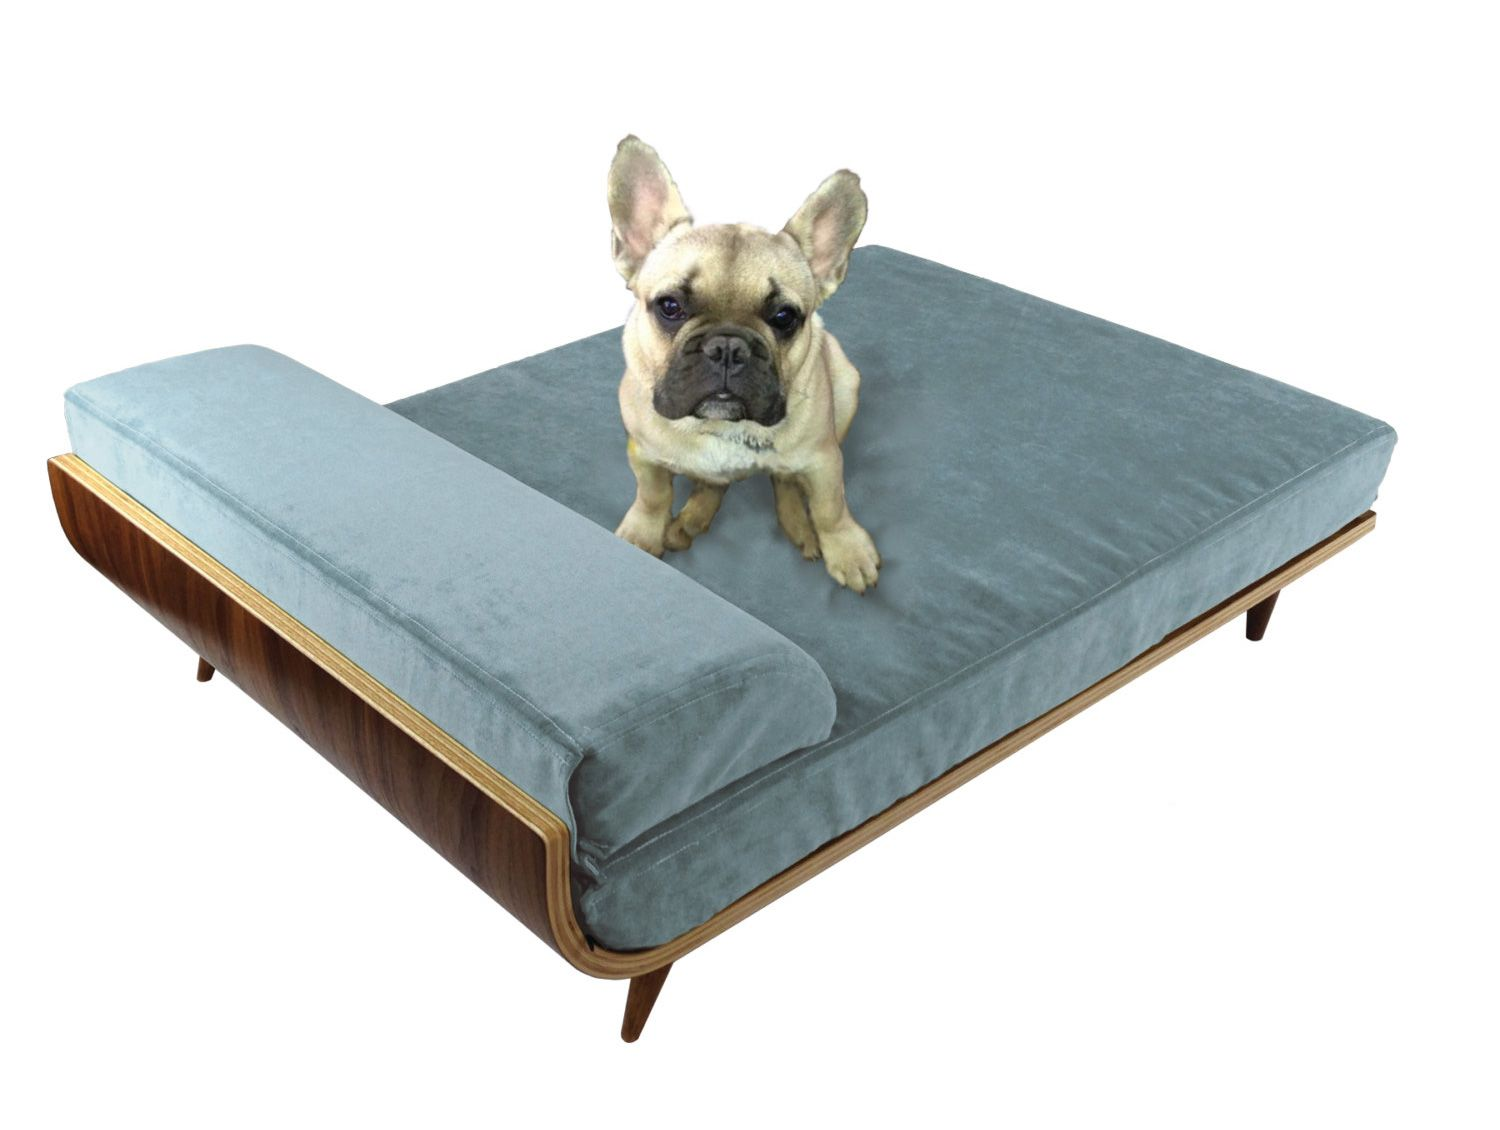 Modern Cat Bed Furniture Cairu Design Modern Dog Beds Dog Accessories Dog Bed